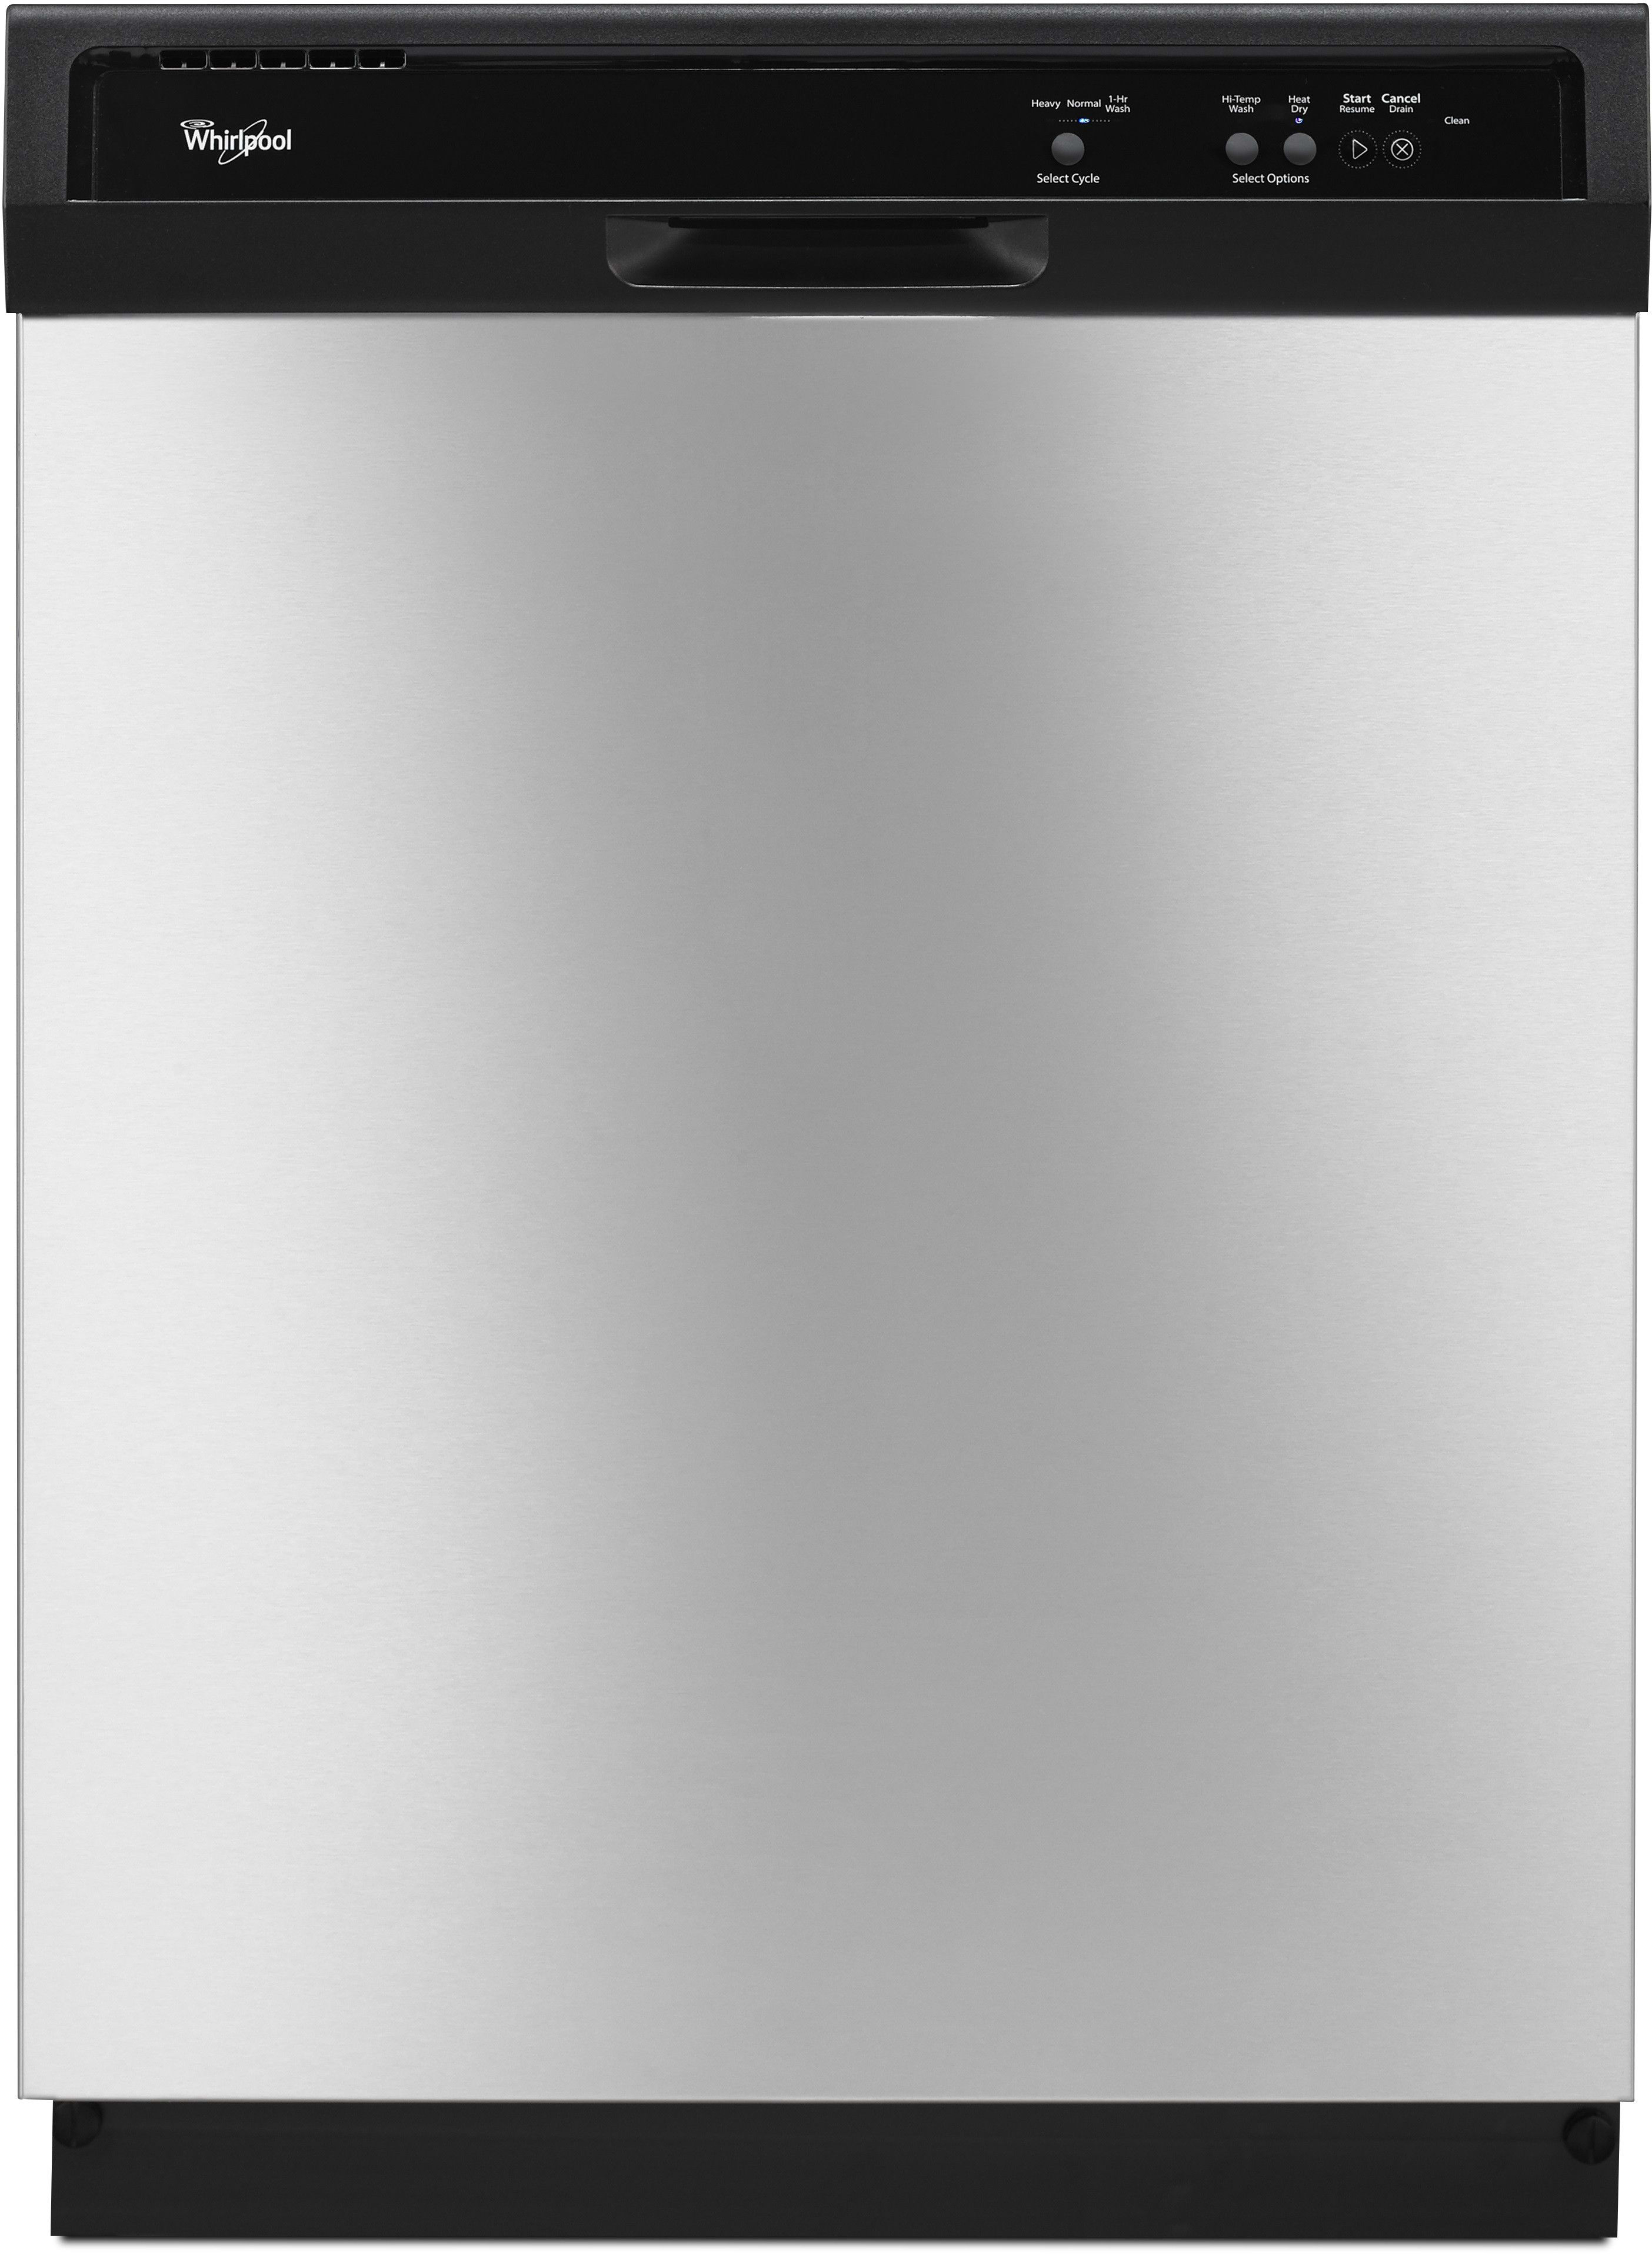 whirlpool wdf120pafs full console dishwasher 12 place setting whirlpool wdf120pafs full console dishwasher 12 place setting capacity 1 hour wash heavy wash heated dry option high temperature wash option and